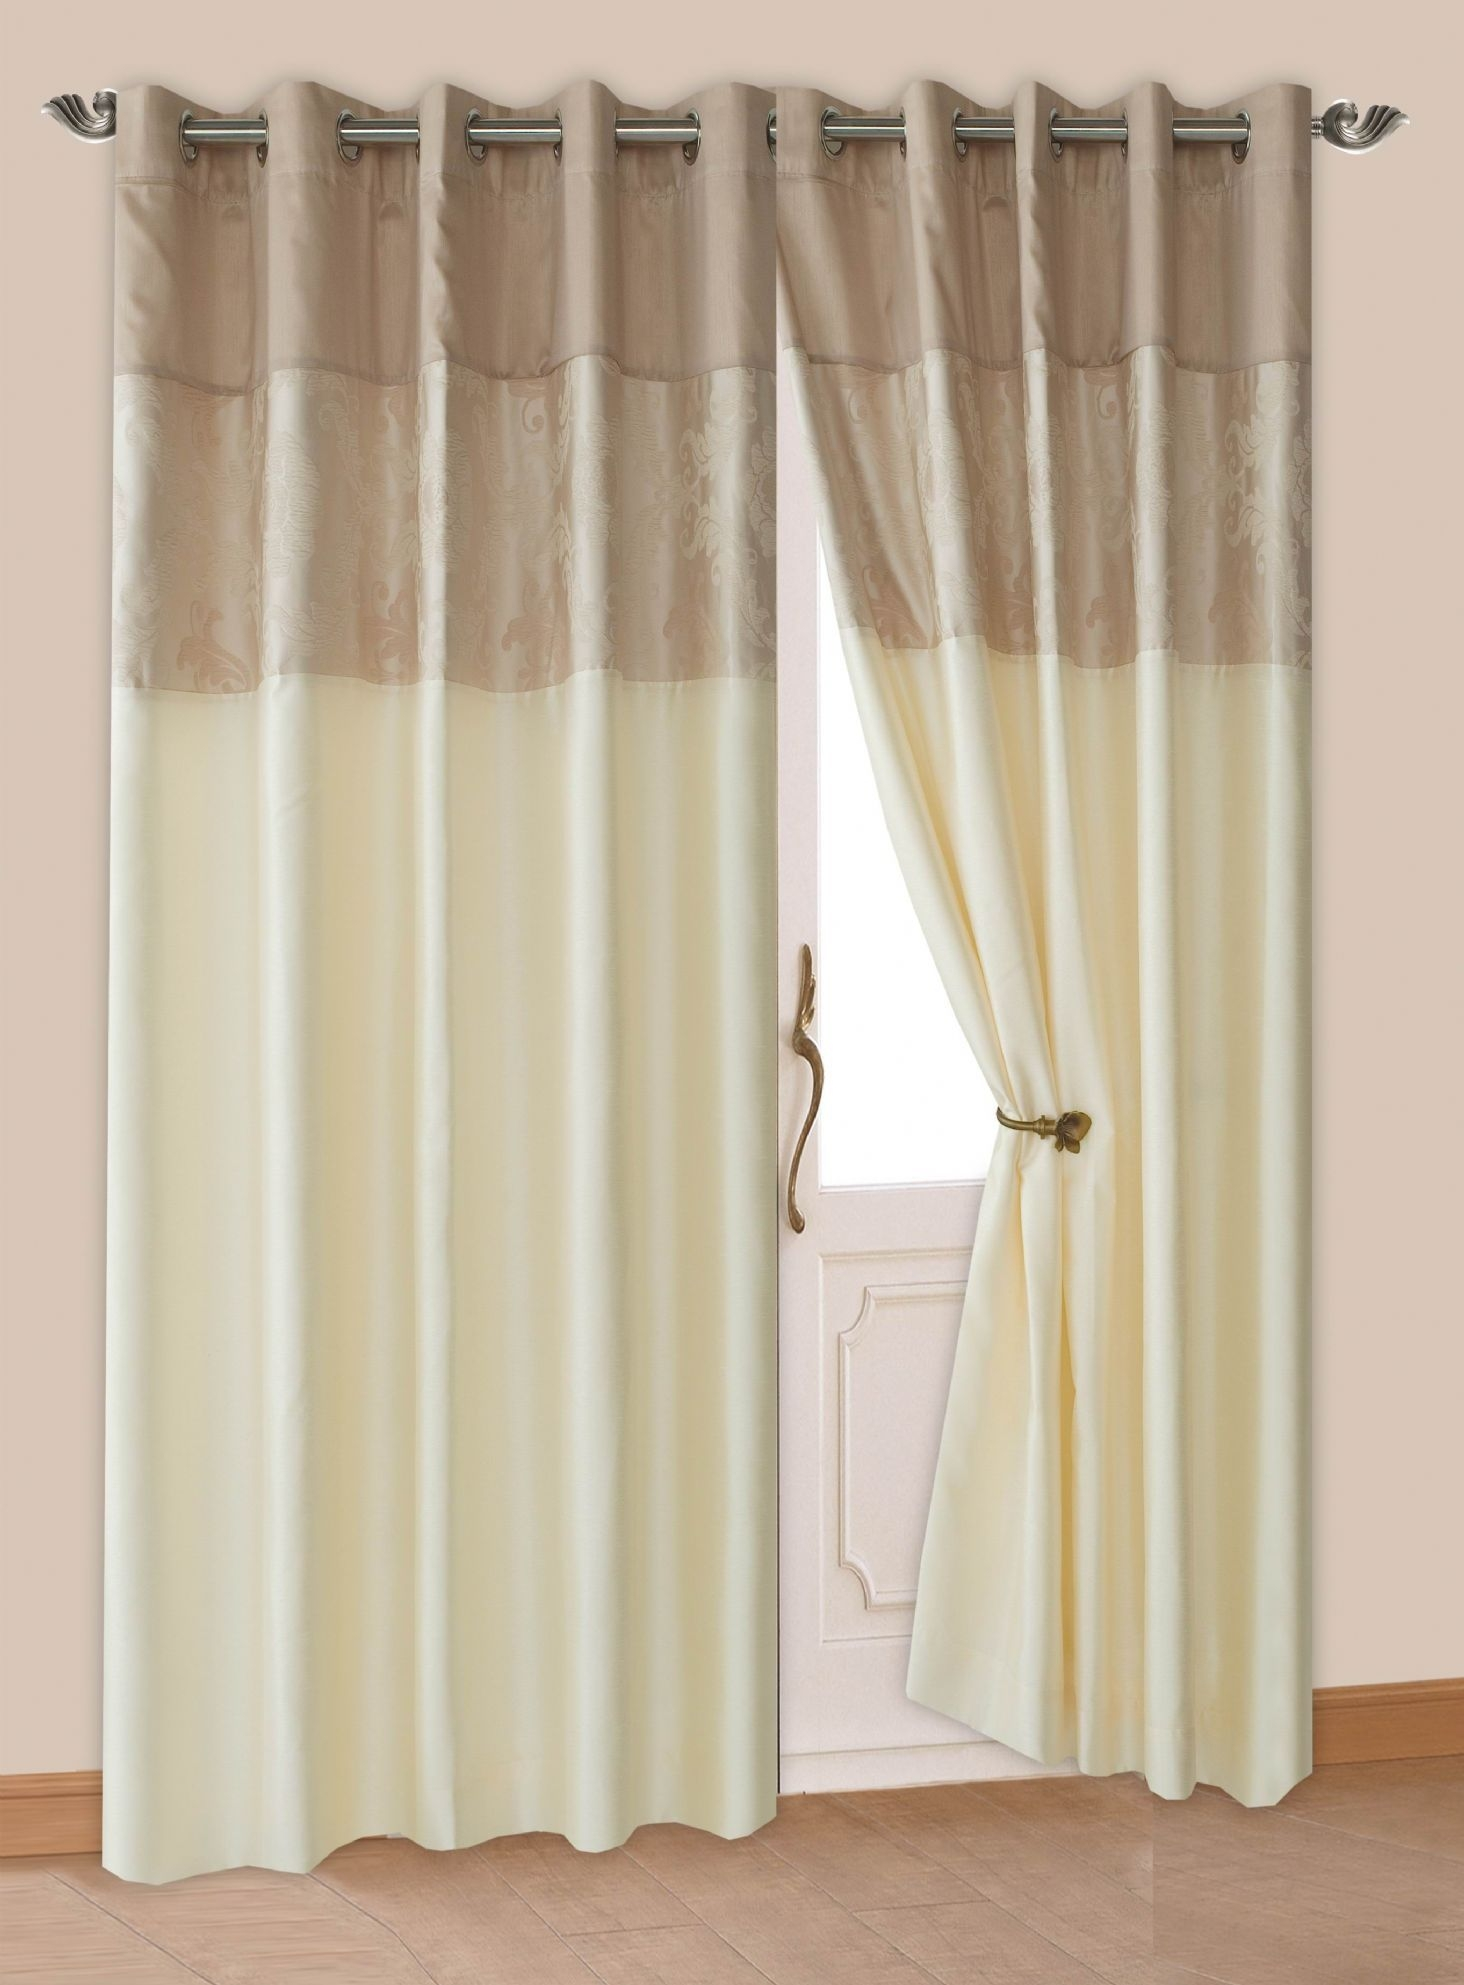 Beige Lined Curtains For Lined Cream Curtains (Image 1 of 15)